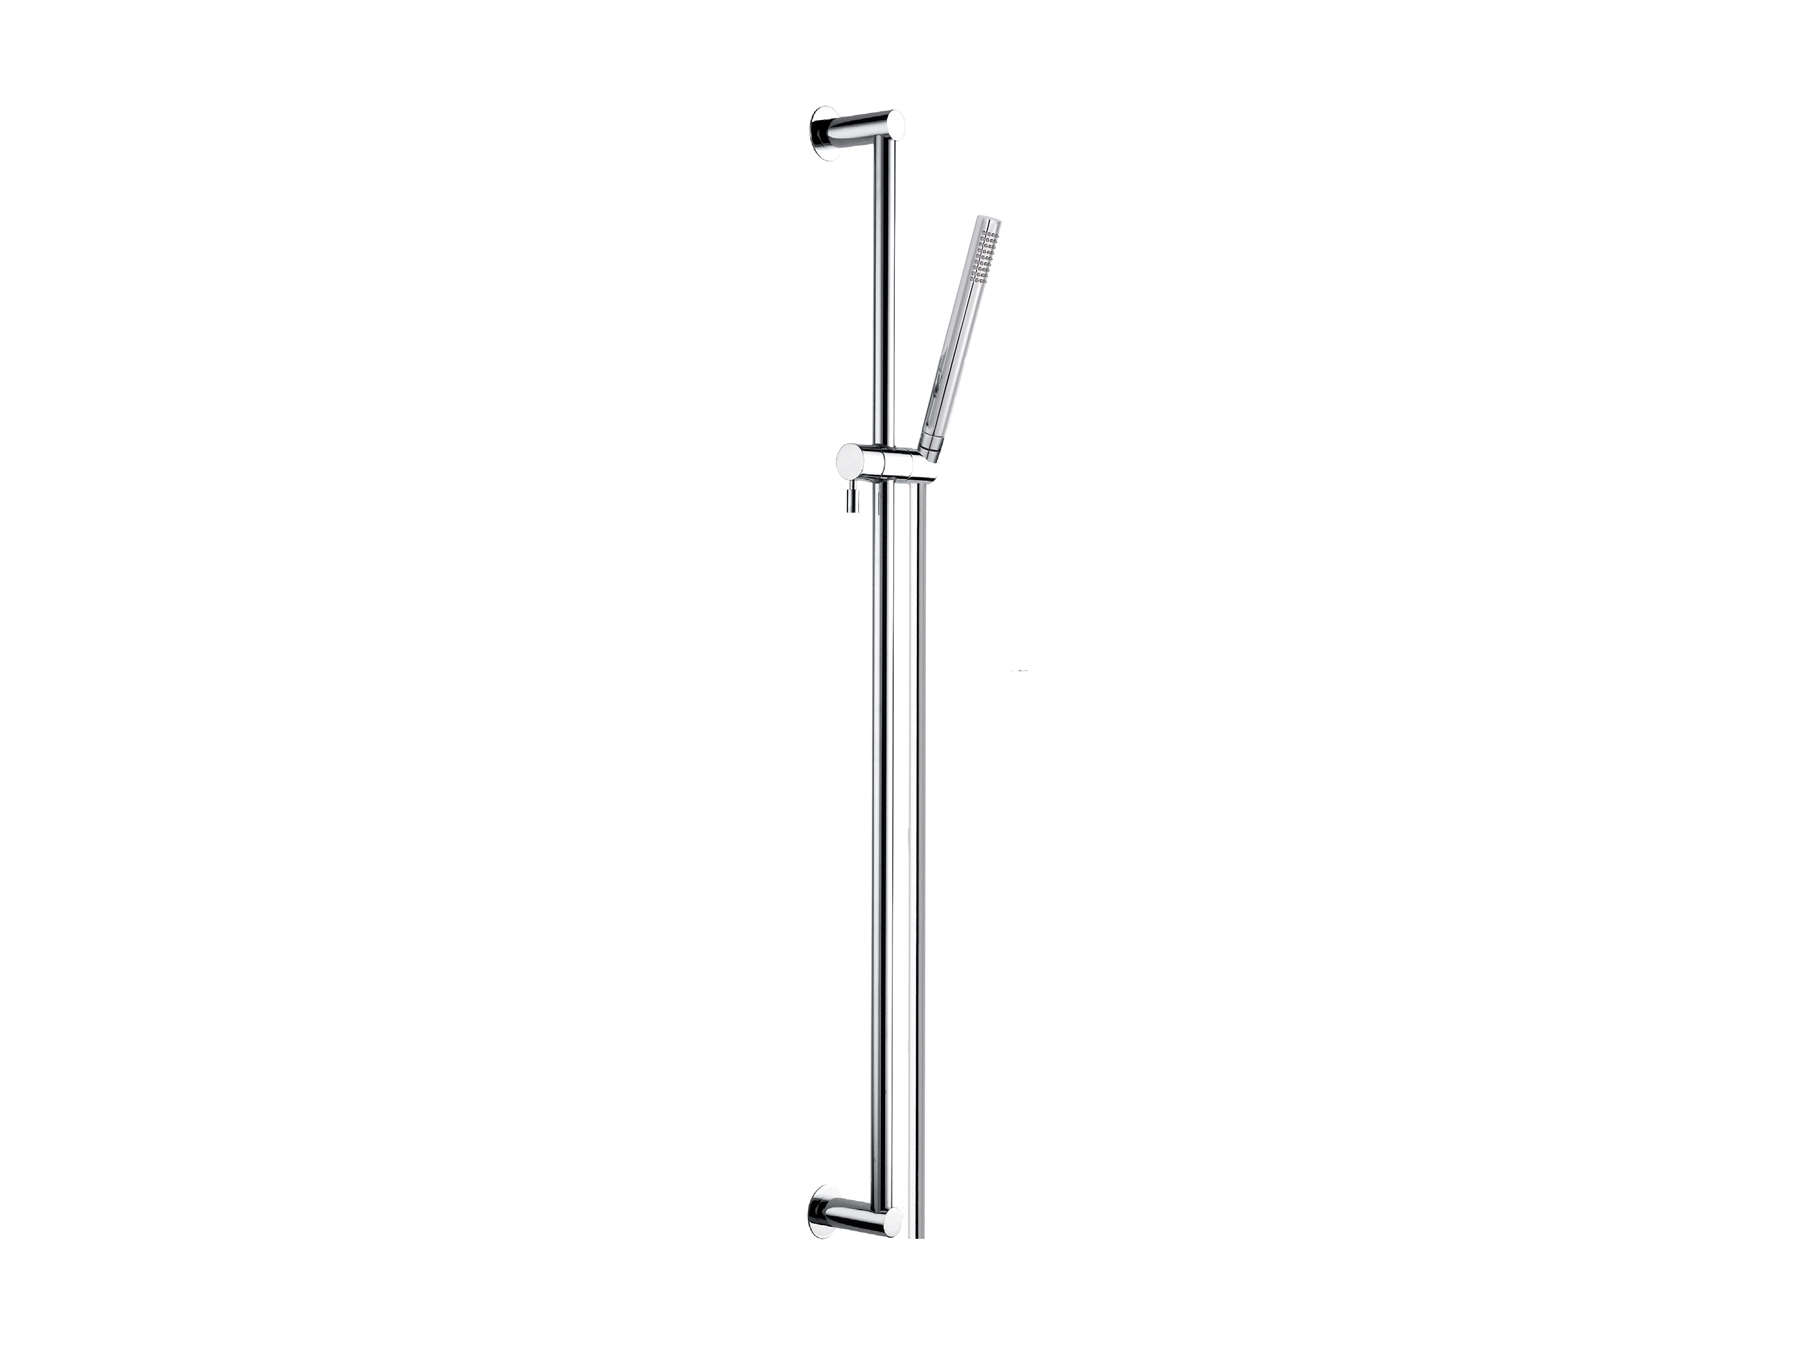 Shower arm and straight handshower 8020.--.17